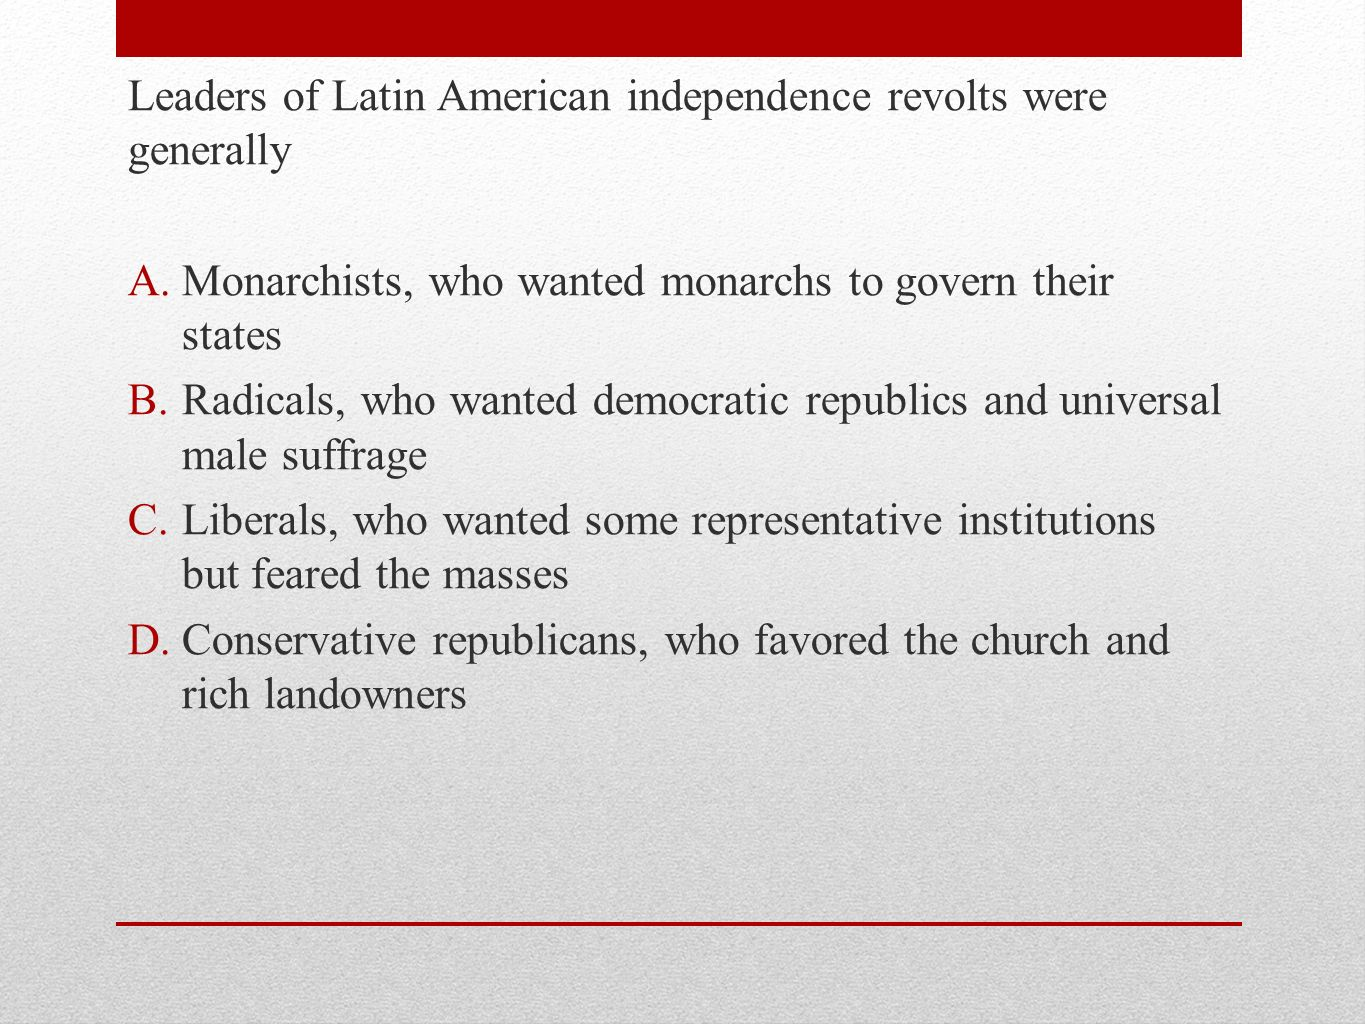 Leaders of Latin American independence revolts were generally